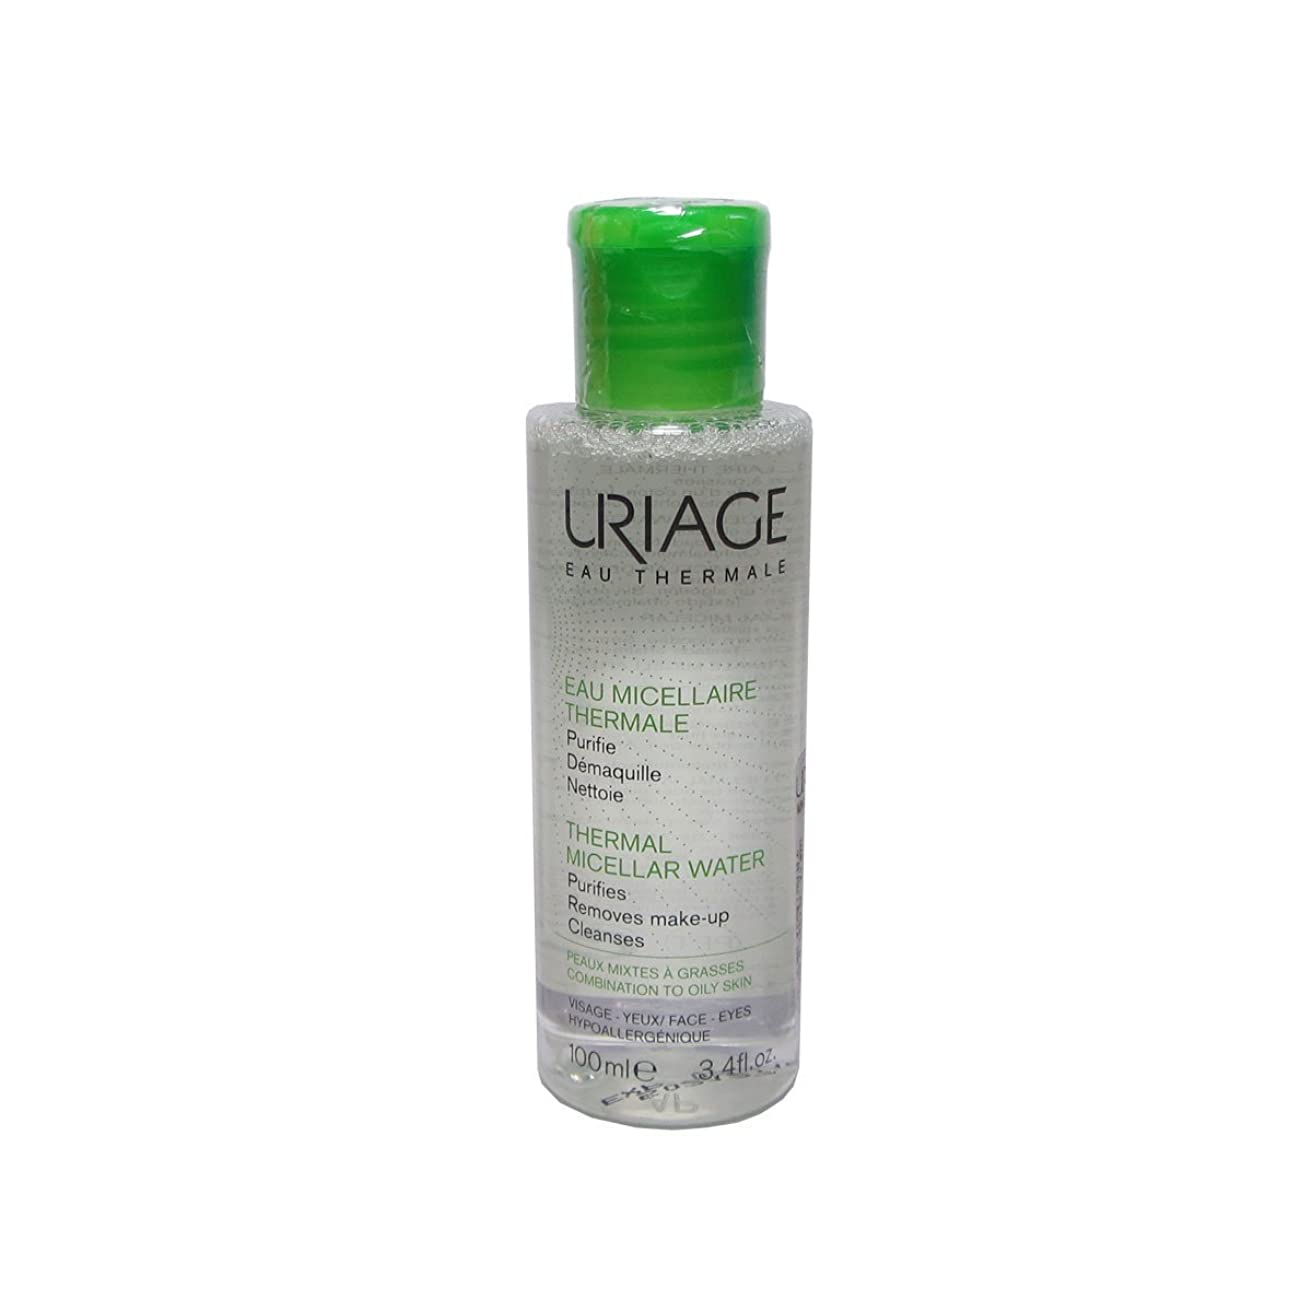 抜粋識別シャットUriage Thermal Micellar Water Combination To Oily Skin 100ml [並行輸入品]